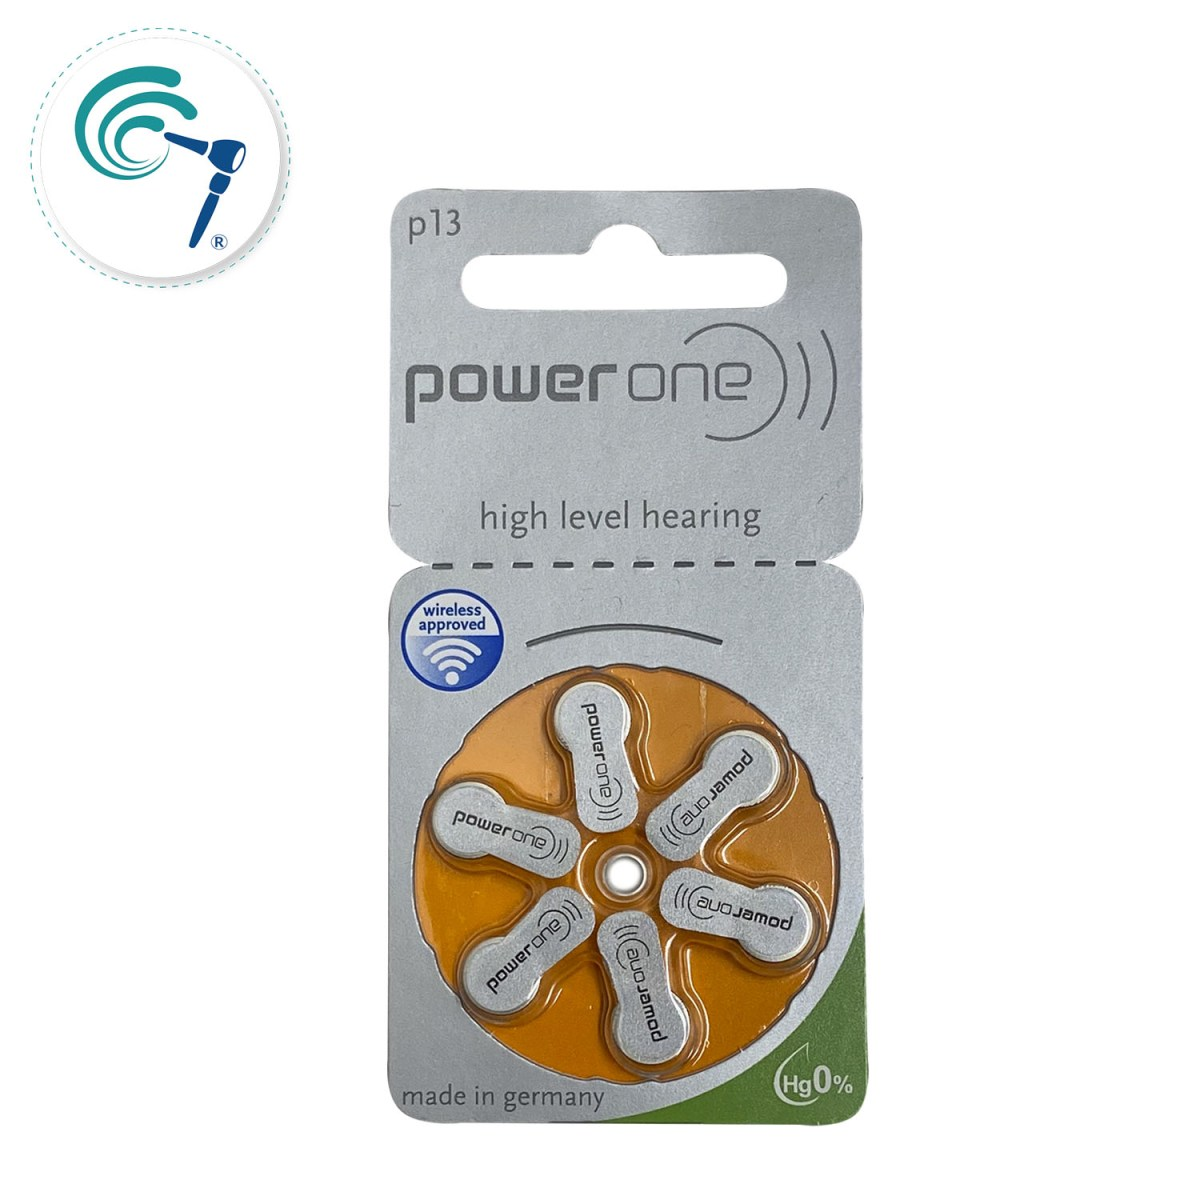 Pilas para implante coclear PowerOne